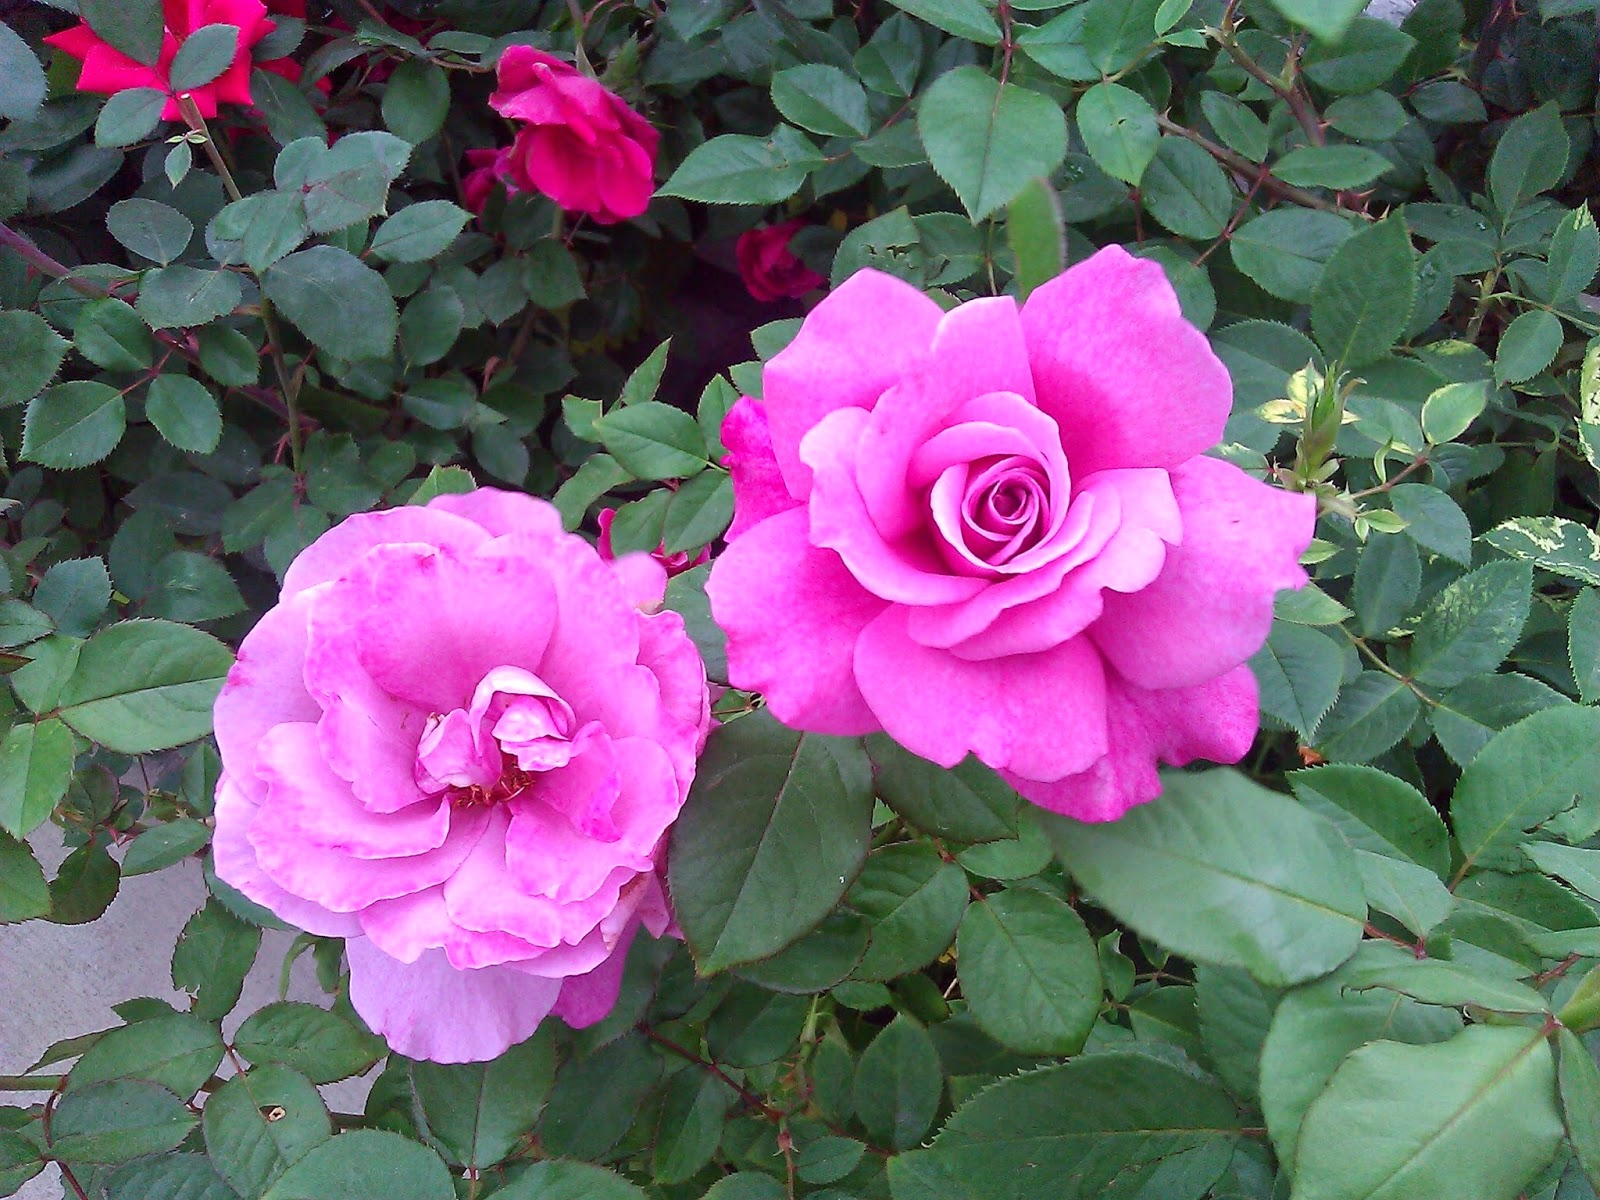 Two bold, beautiful pink roses